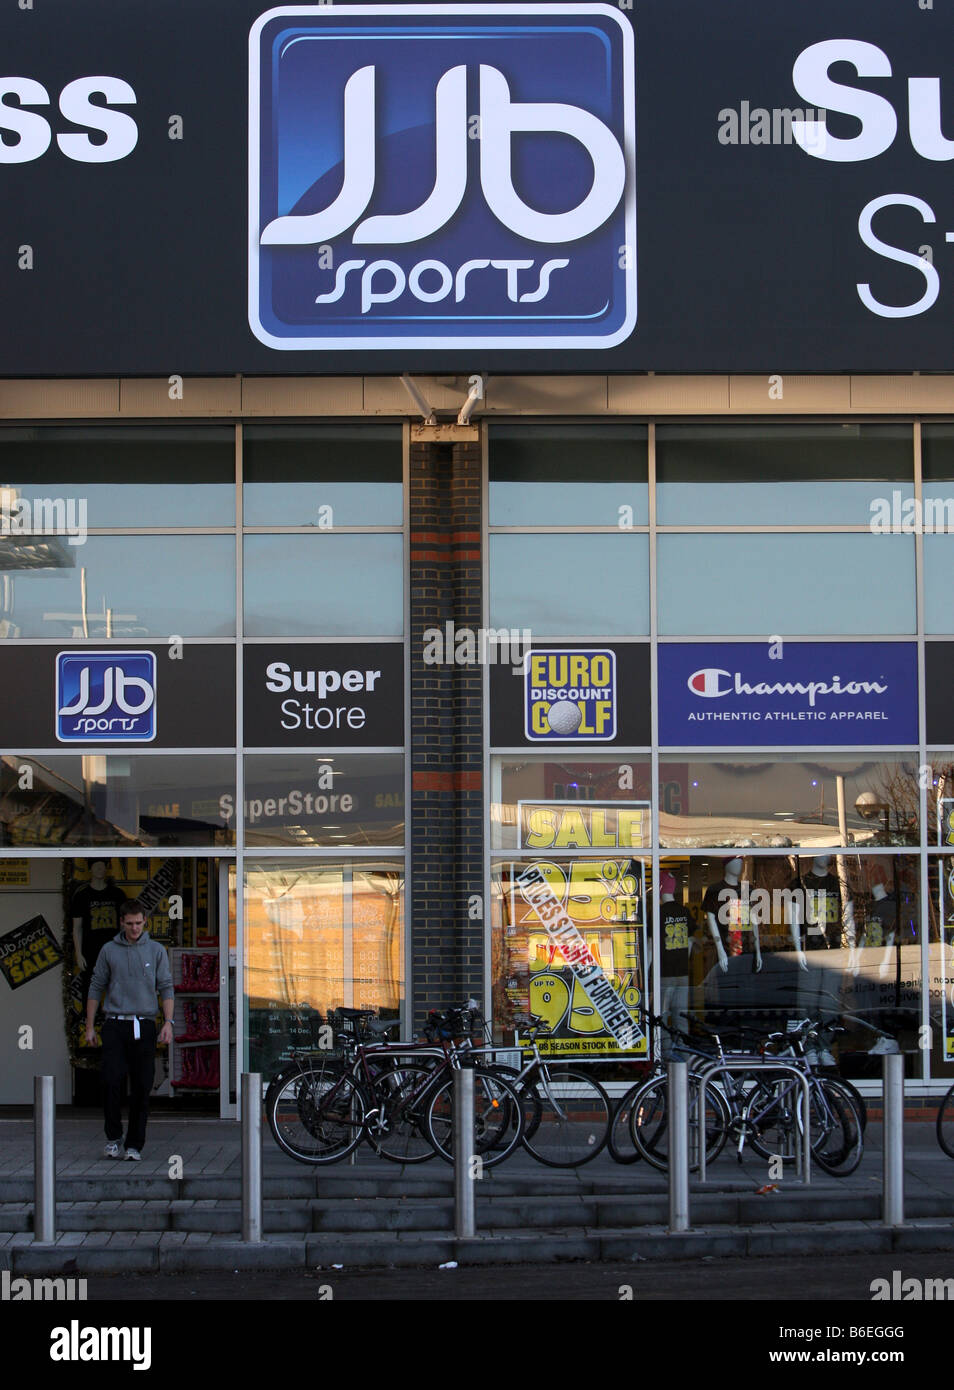 JJB SPORTS SHOP AND FITNESS CENTRE - Stock Image